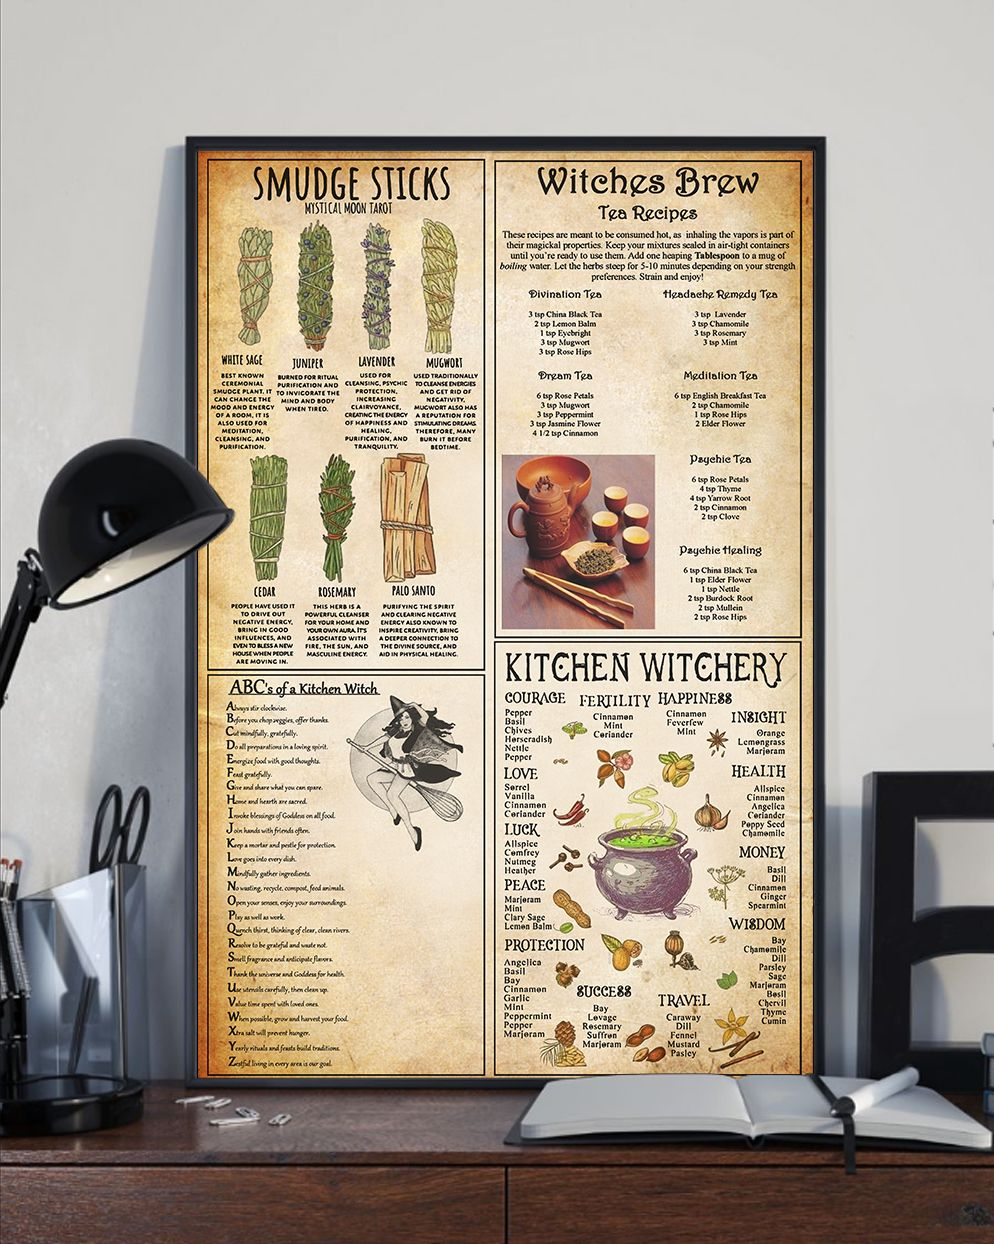 Kitchen Witchcraft Knowledge Poster Witches Brew Tea Recipes Kitchen Witchery Kitchen Witchery Witches Brew Wiccan Spell Book